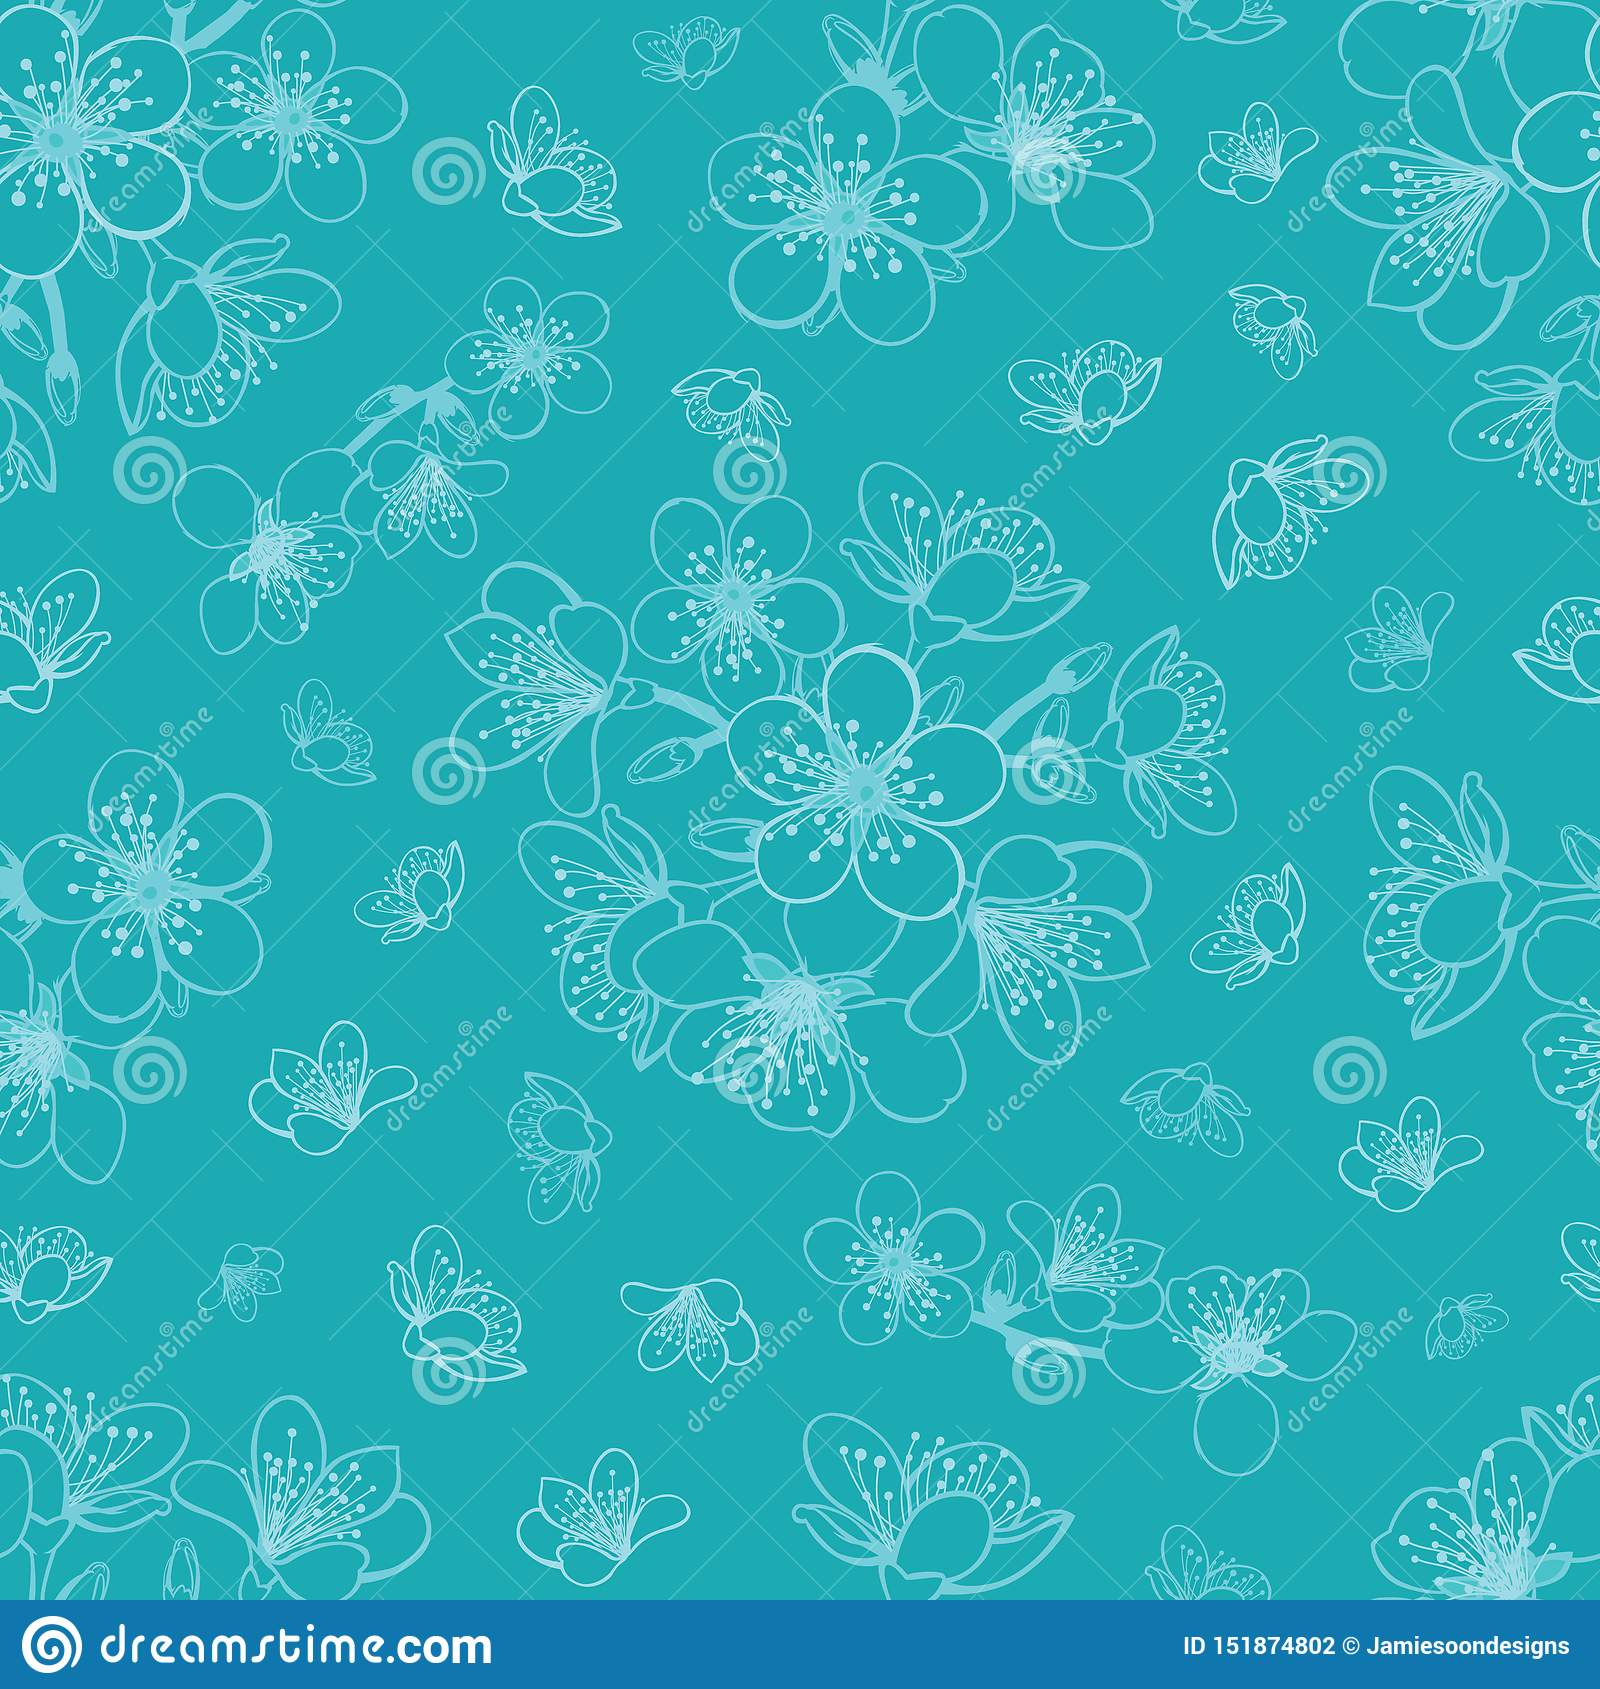 Vector blue cyan cherry blossom sakura flowers seamless pattern background